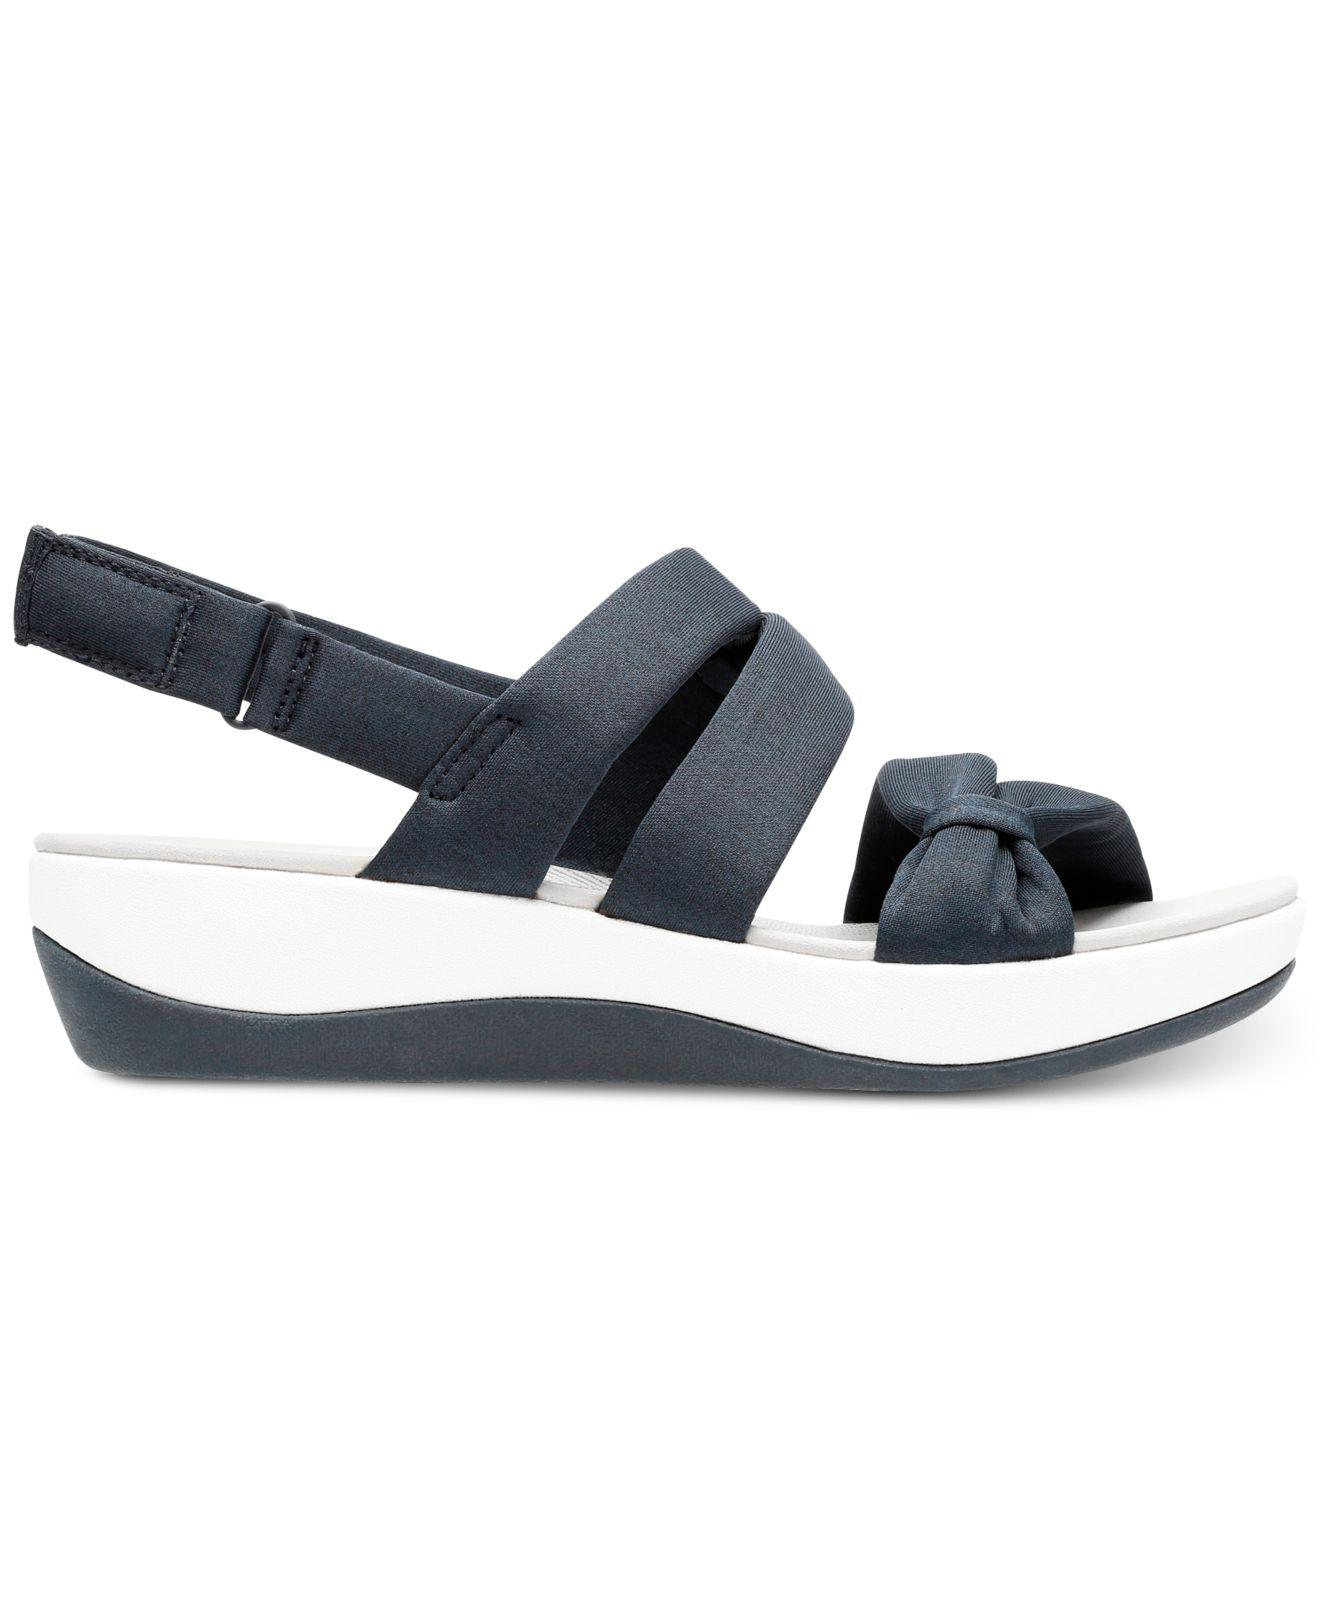 1678cf5f7bb6 Lyst - Clarks Cloudsteppers Arla Mae Wedge Sandals in Blue